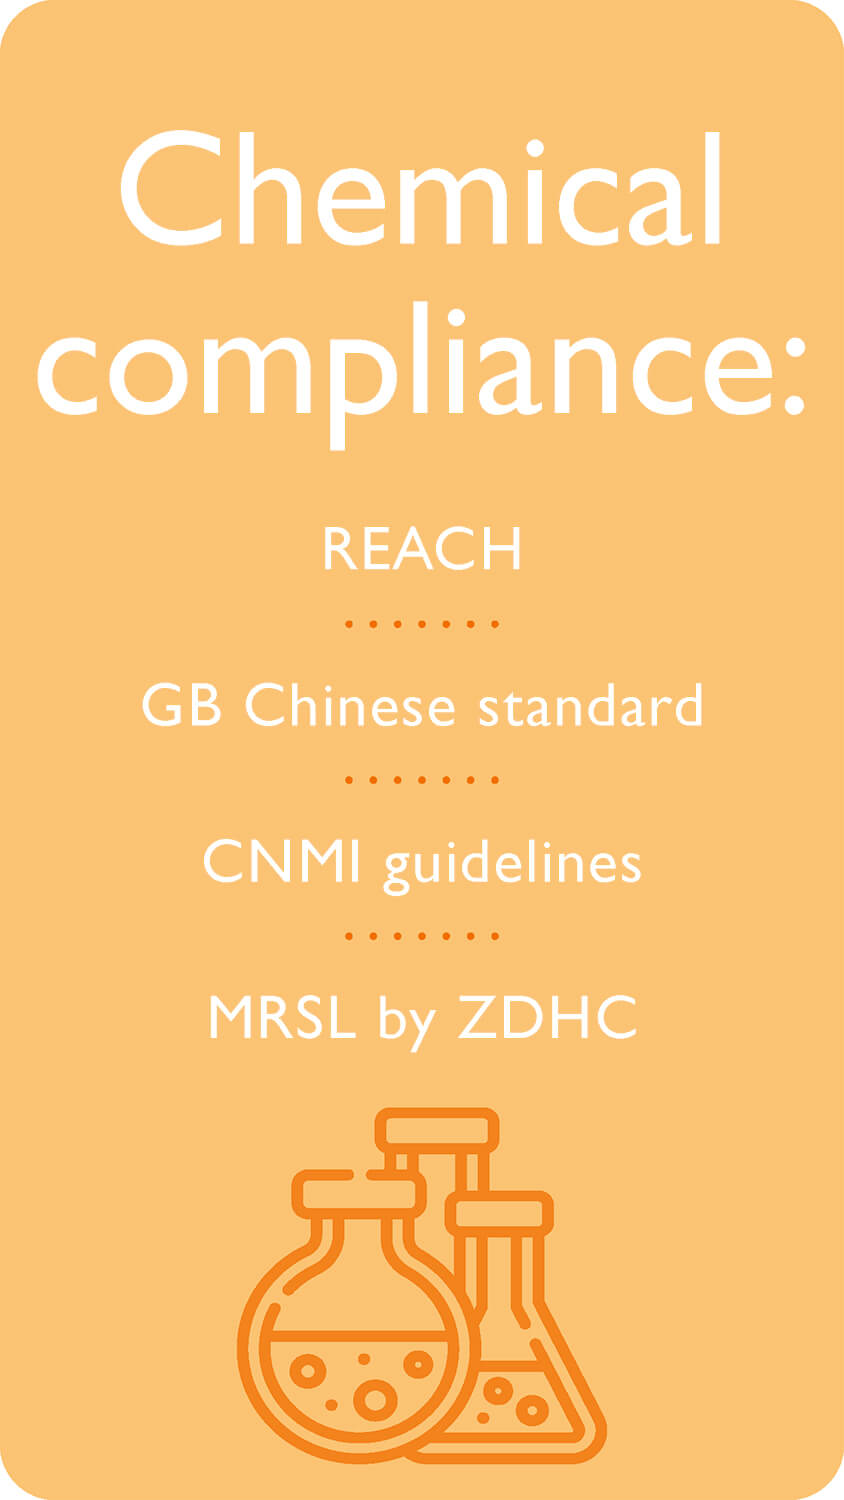 Chemical compliance: REACH, GB Chinese standard, CNMI guidelines, MRSL by ZDHC